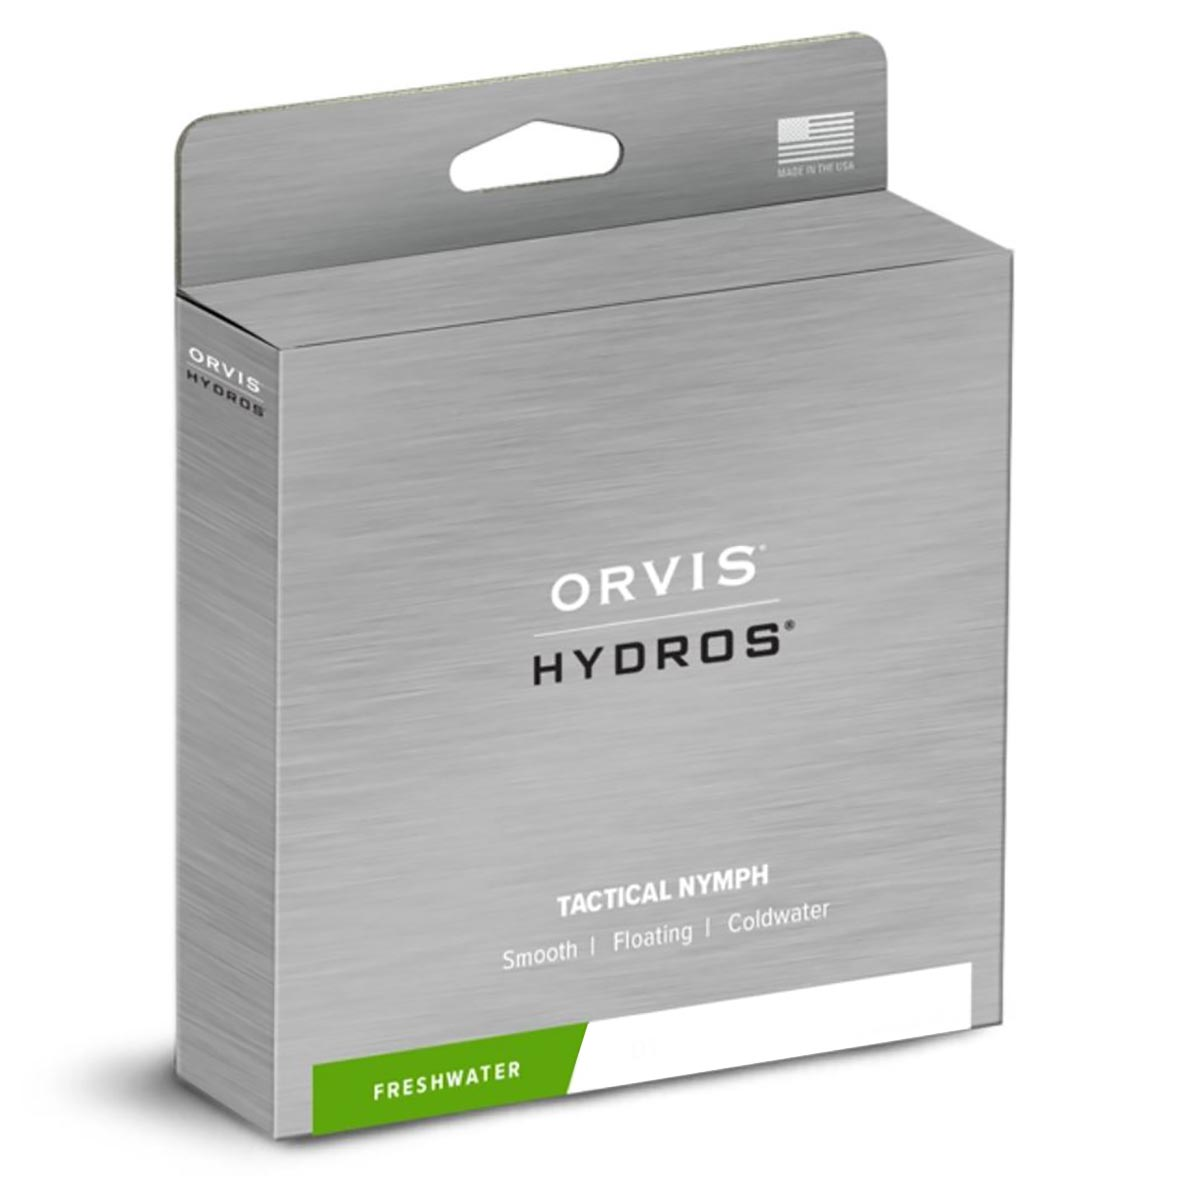 Orvis Hydros Tactical Nymph Fly Line